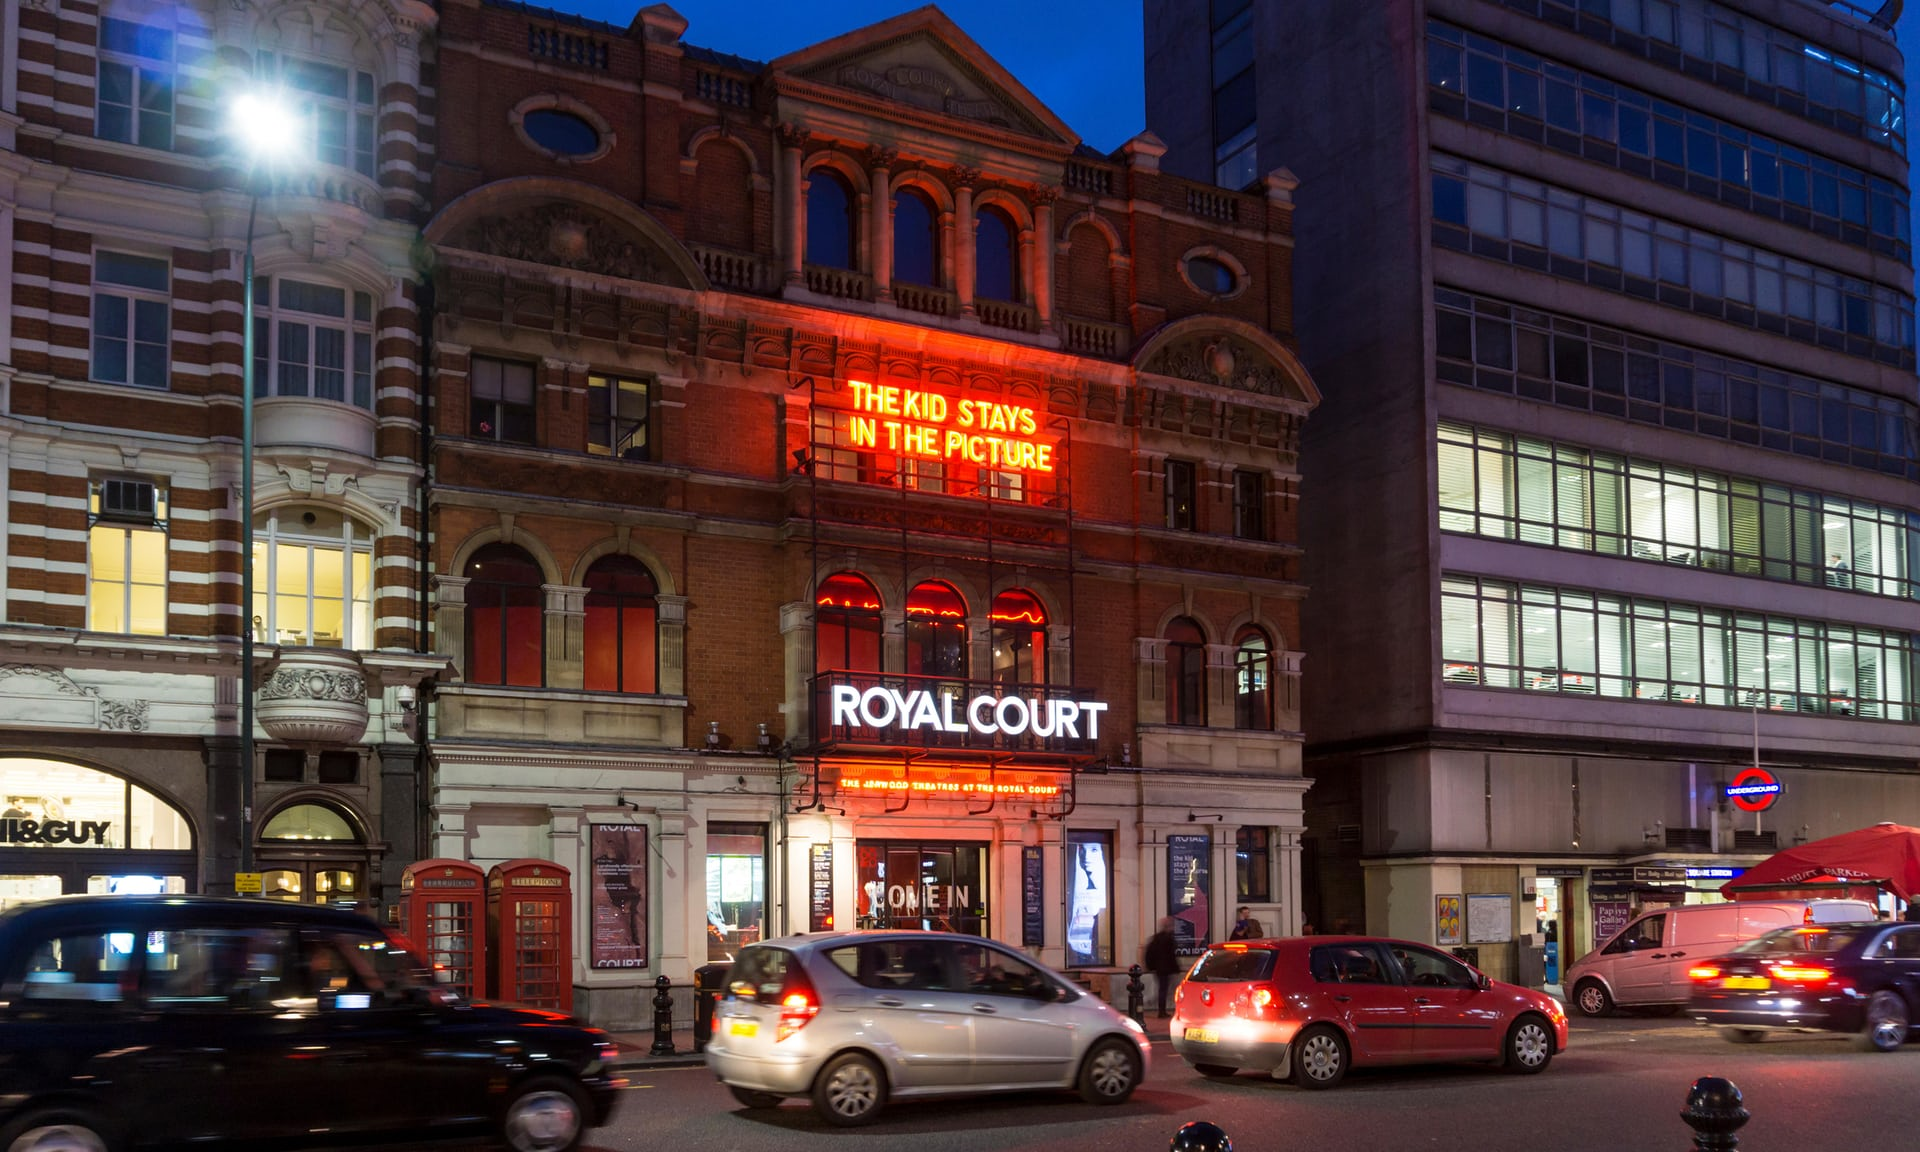 The Royal Court Theatre in London. (Photo courtesy: The Guardian)